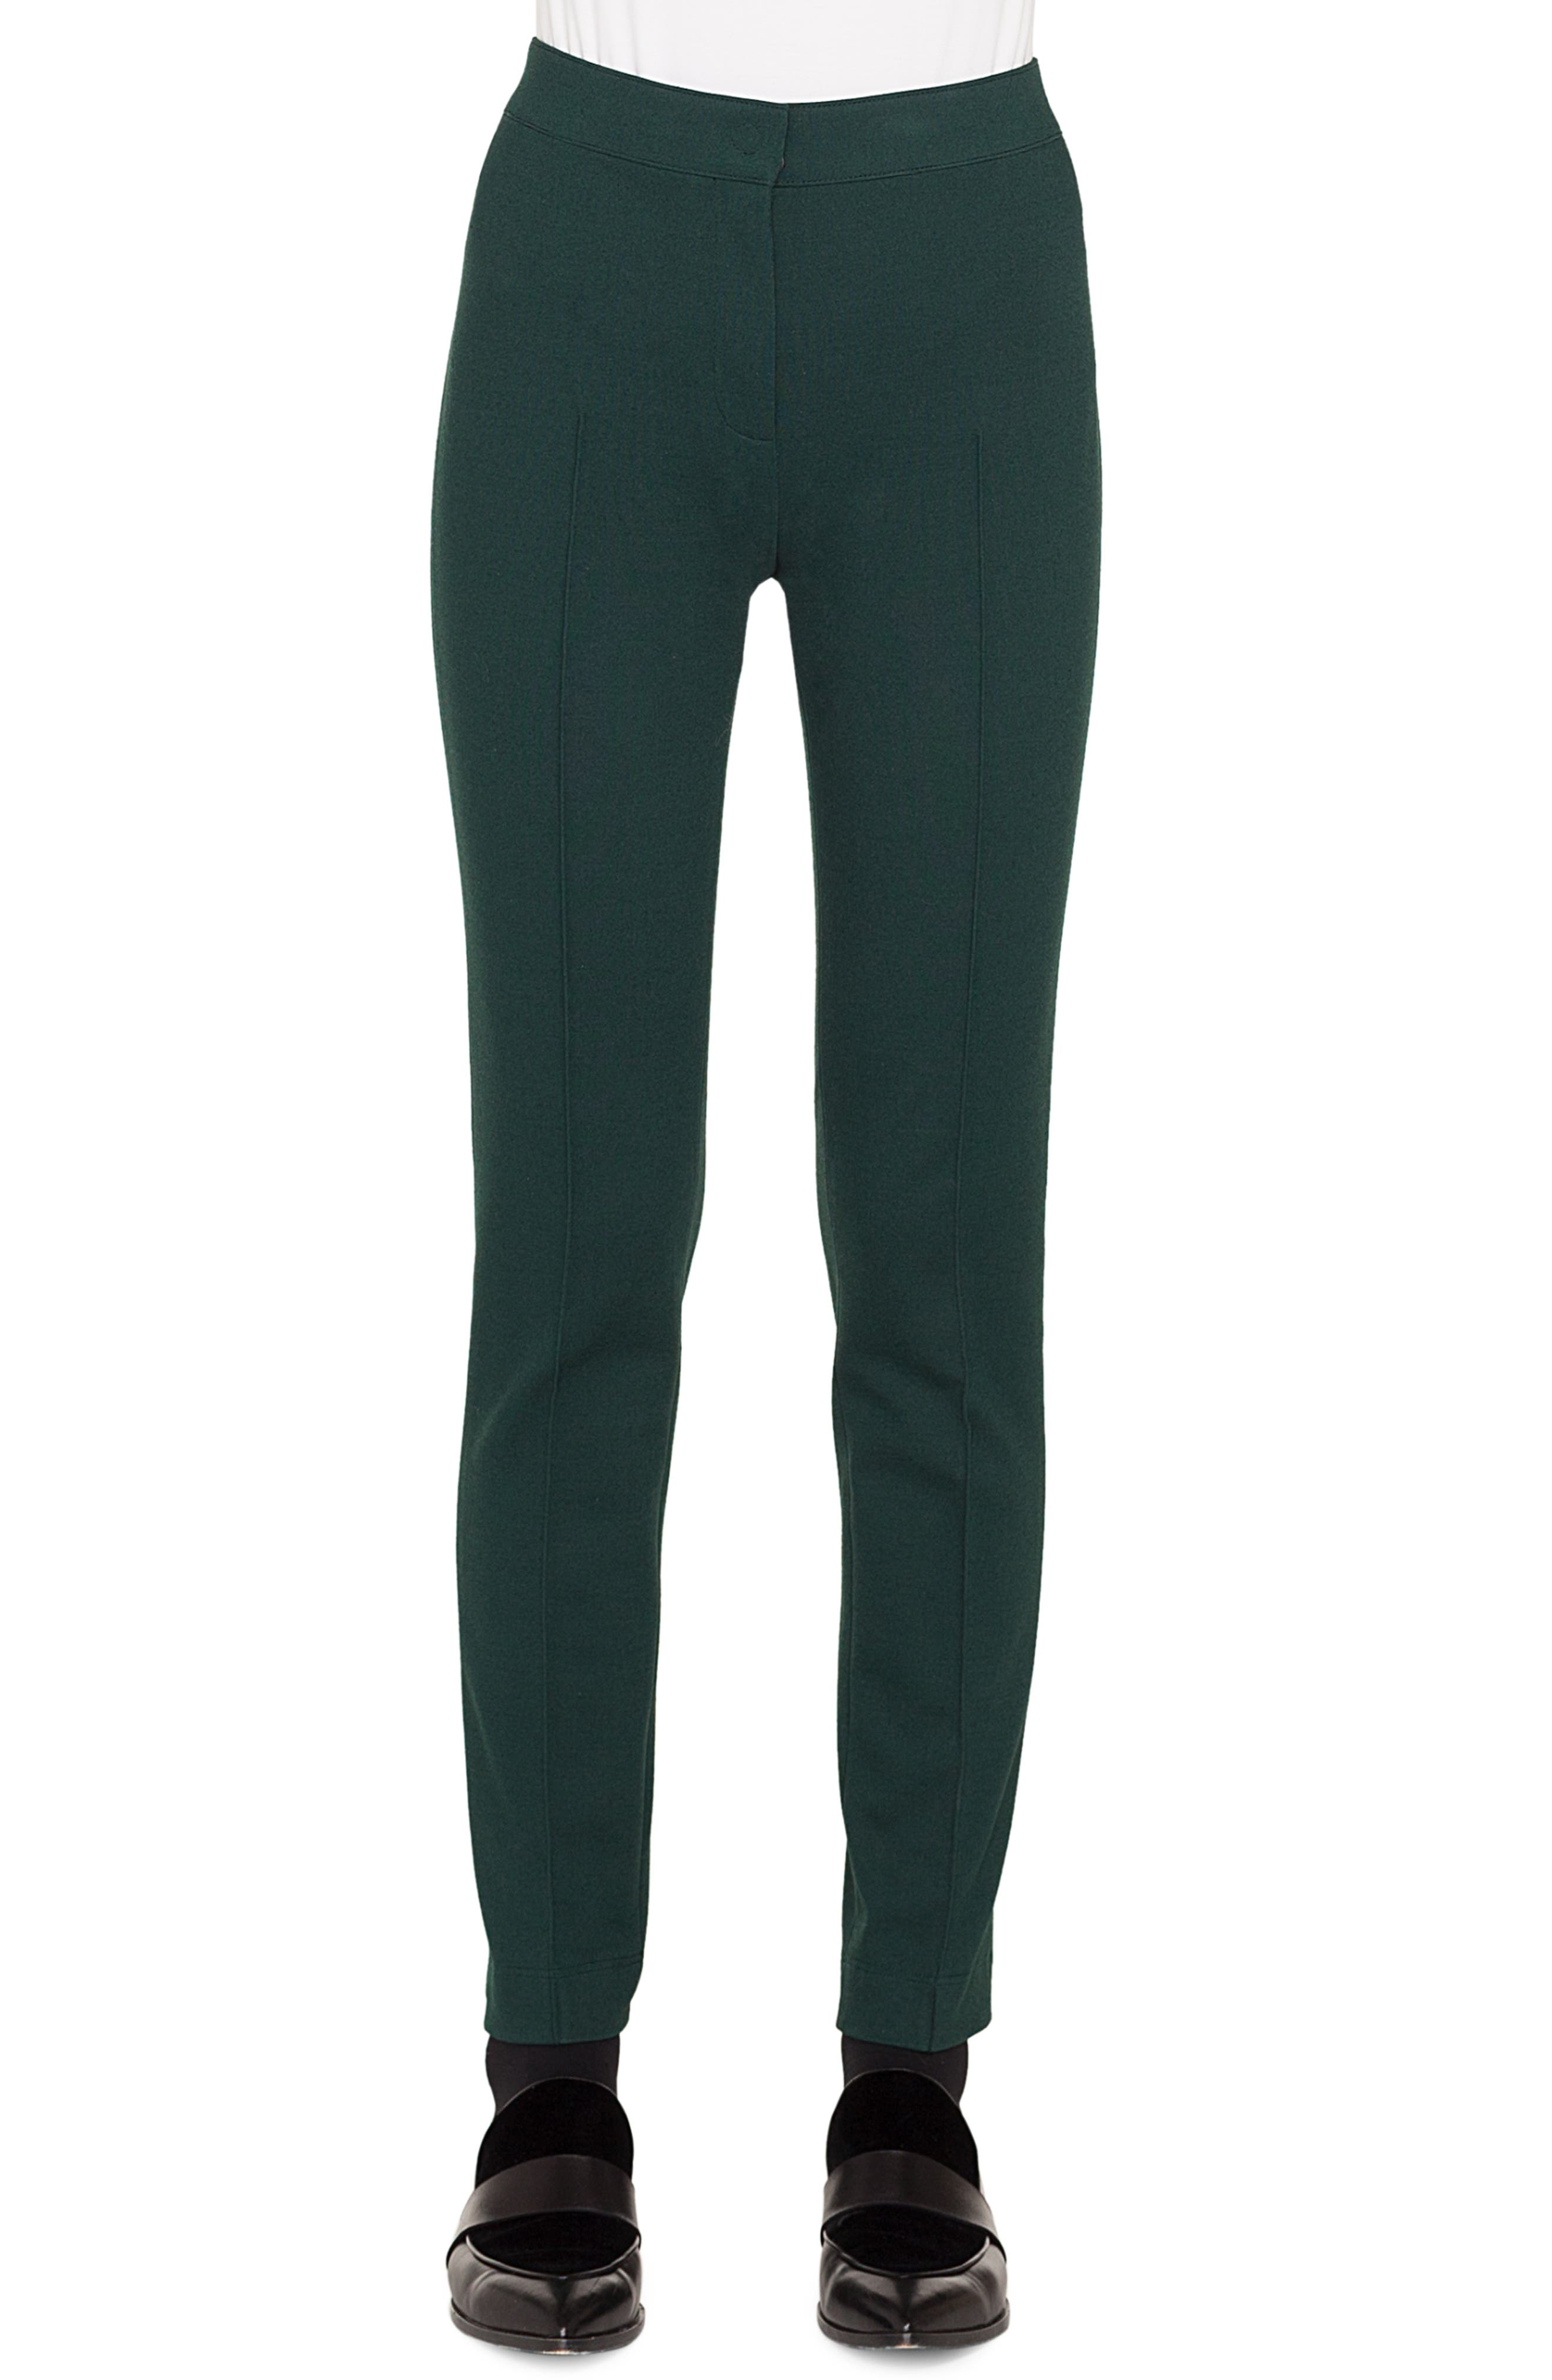 Mara Skinny Stretch-Melange Pants in Ivy